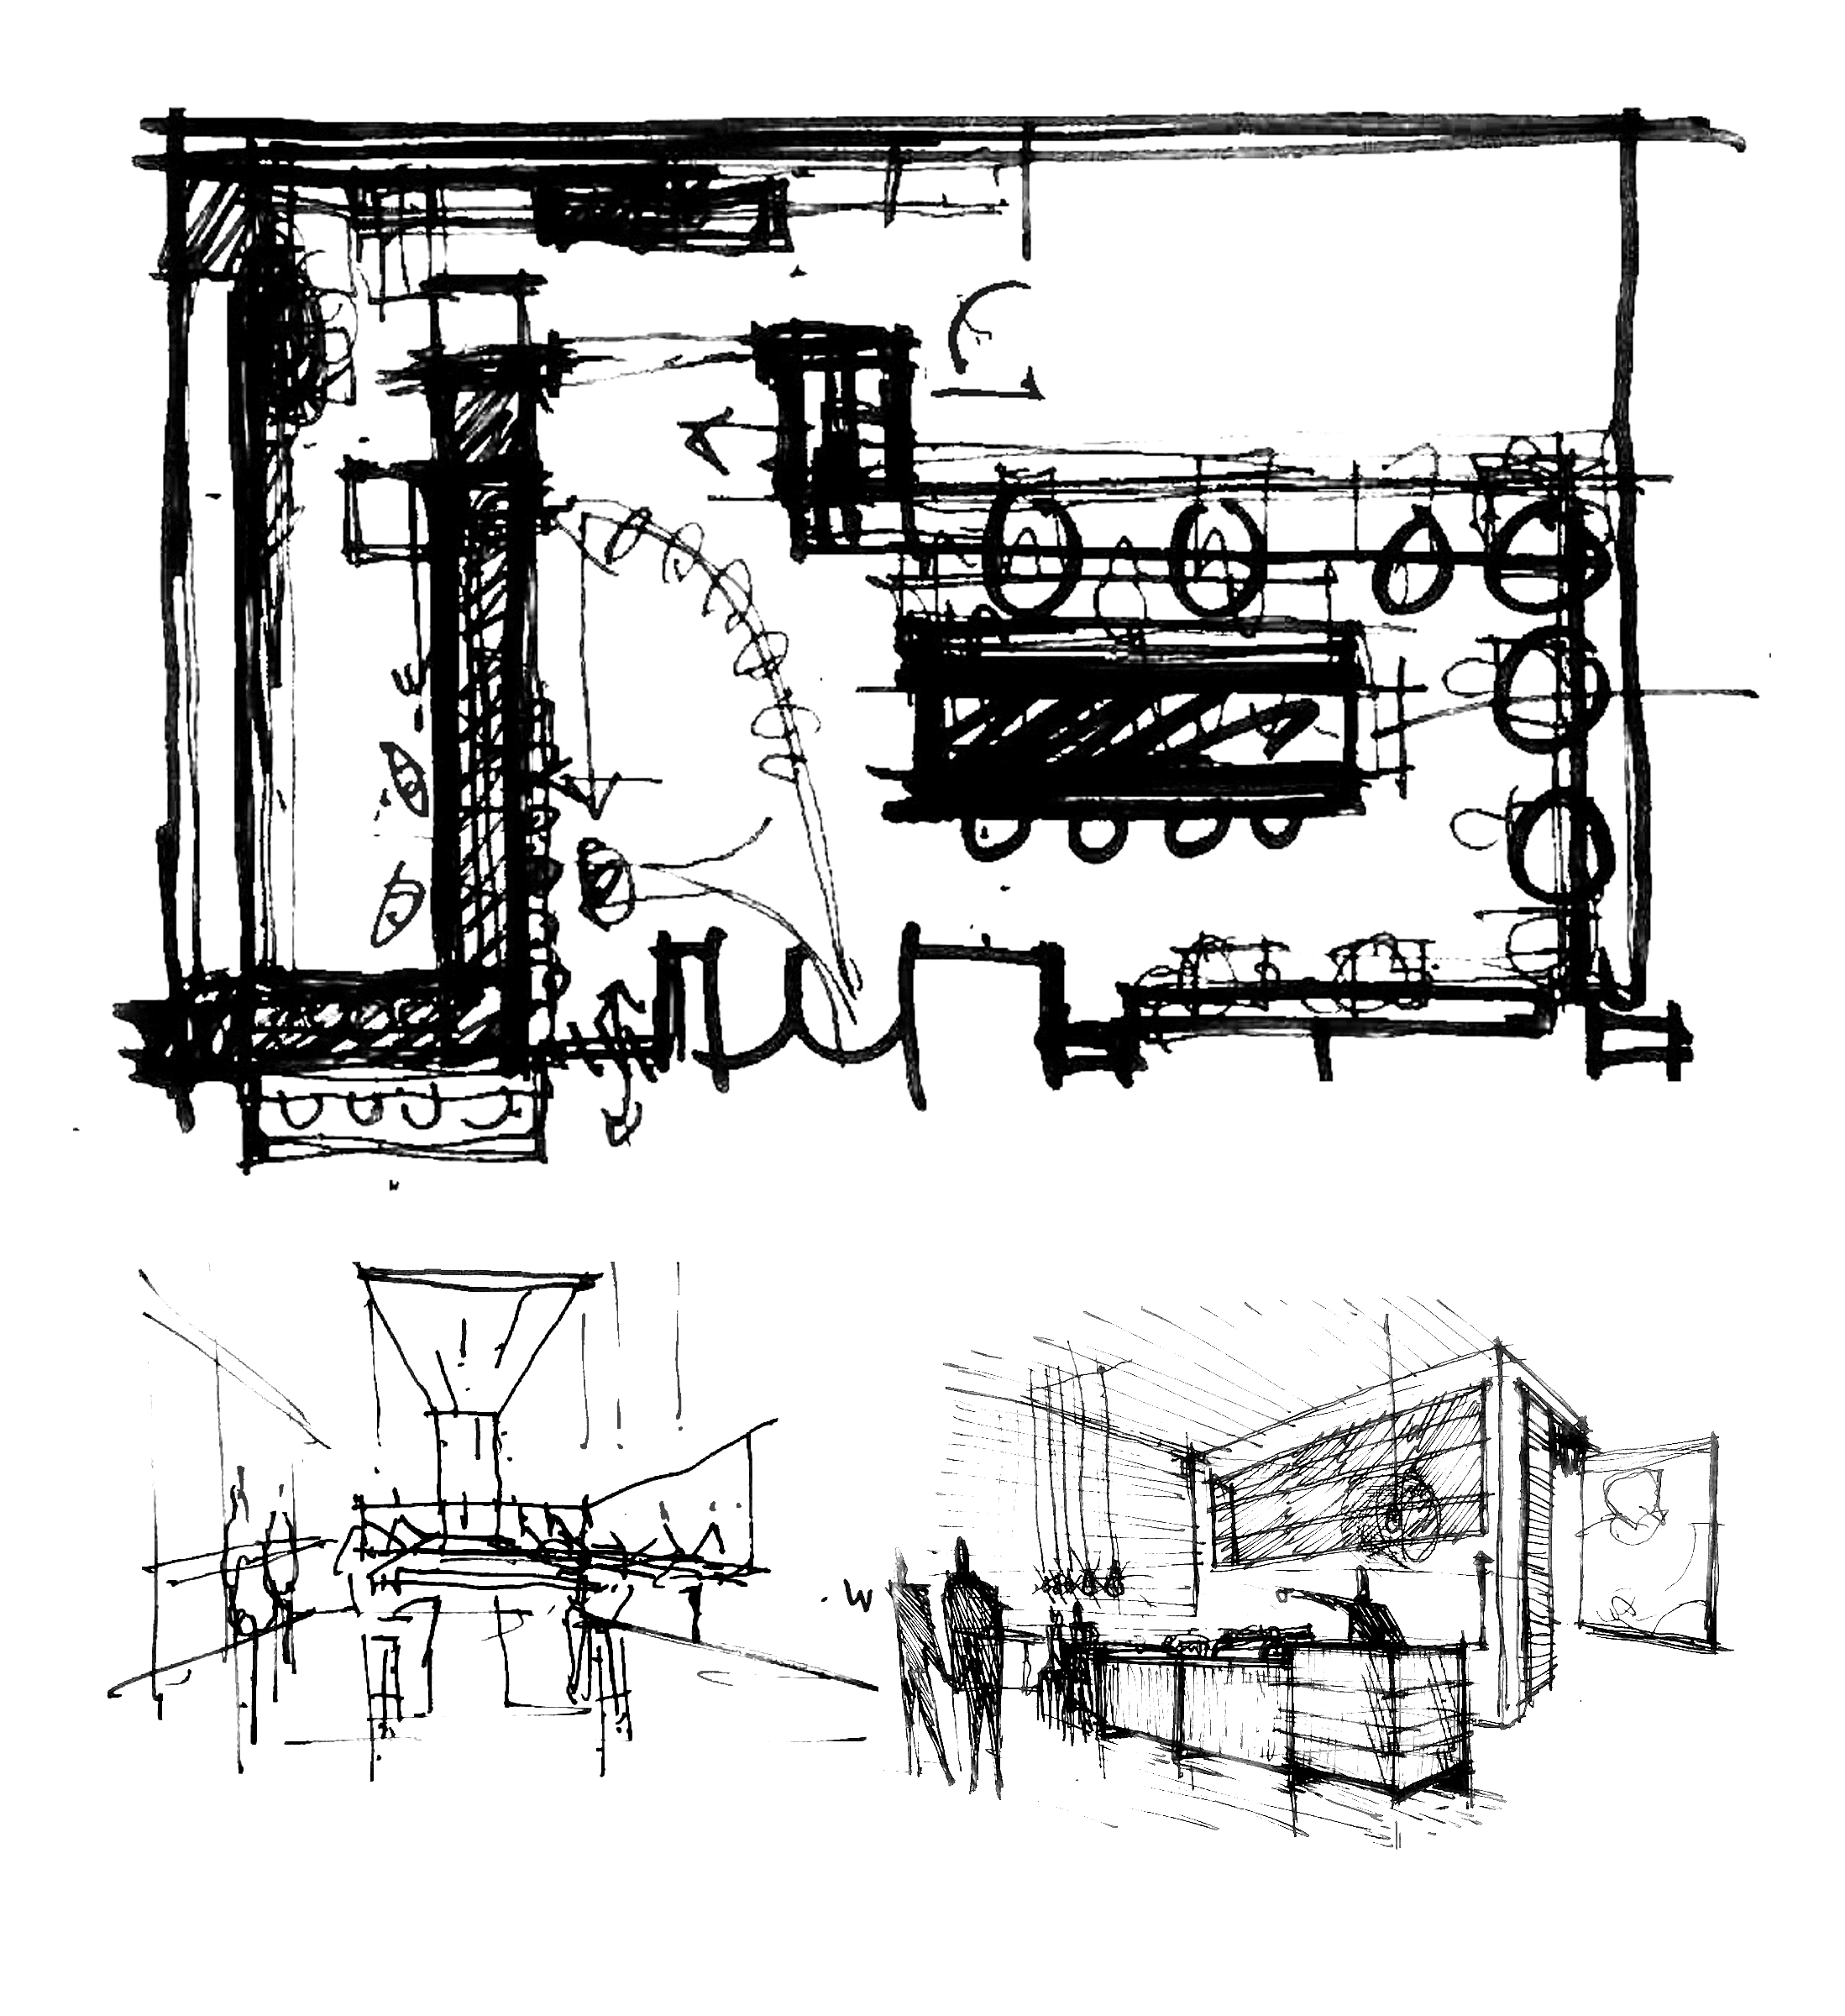 Novo Coffee shop 1600 Glenarm concept sketches open studio architecture OSA